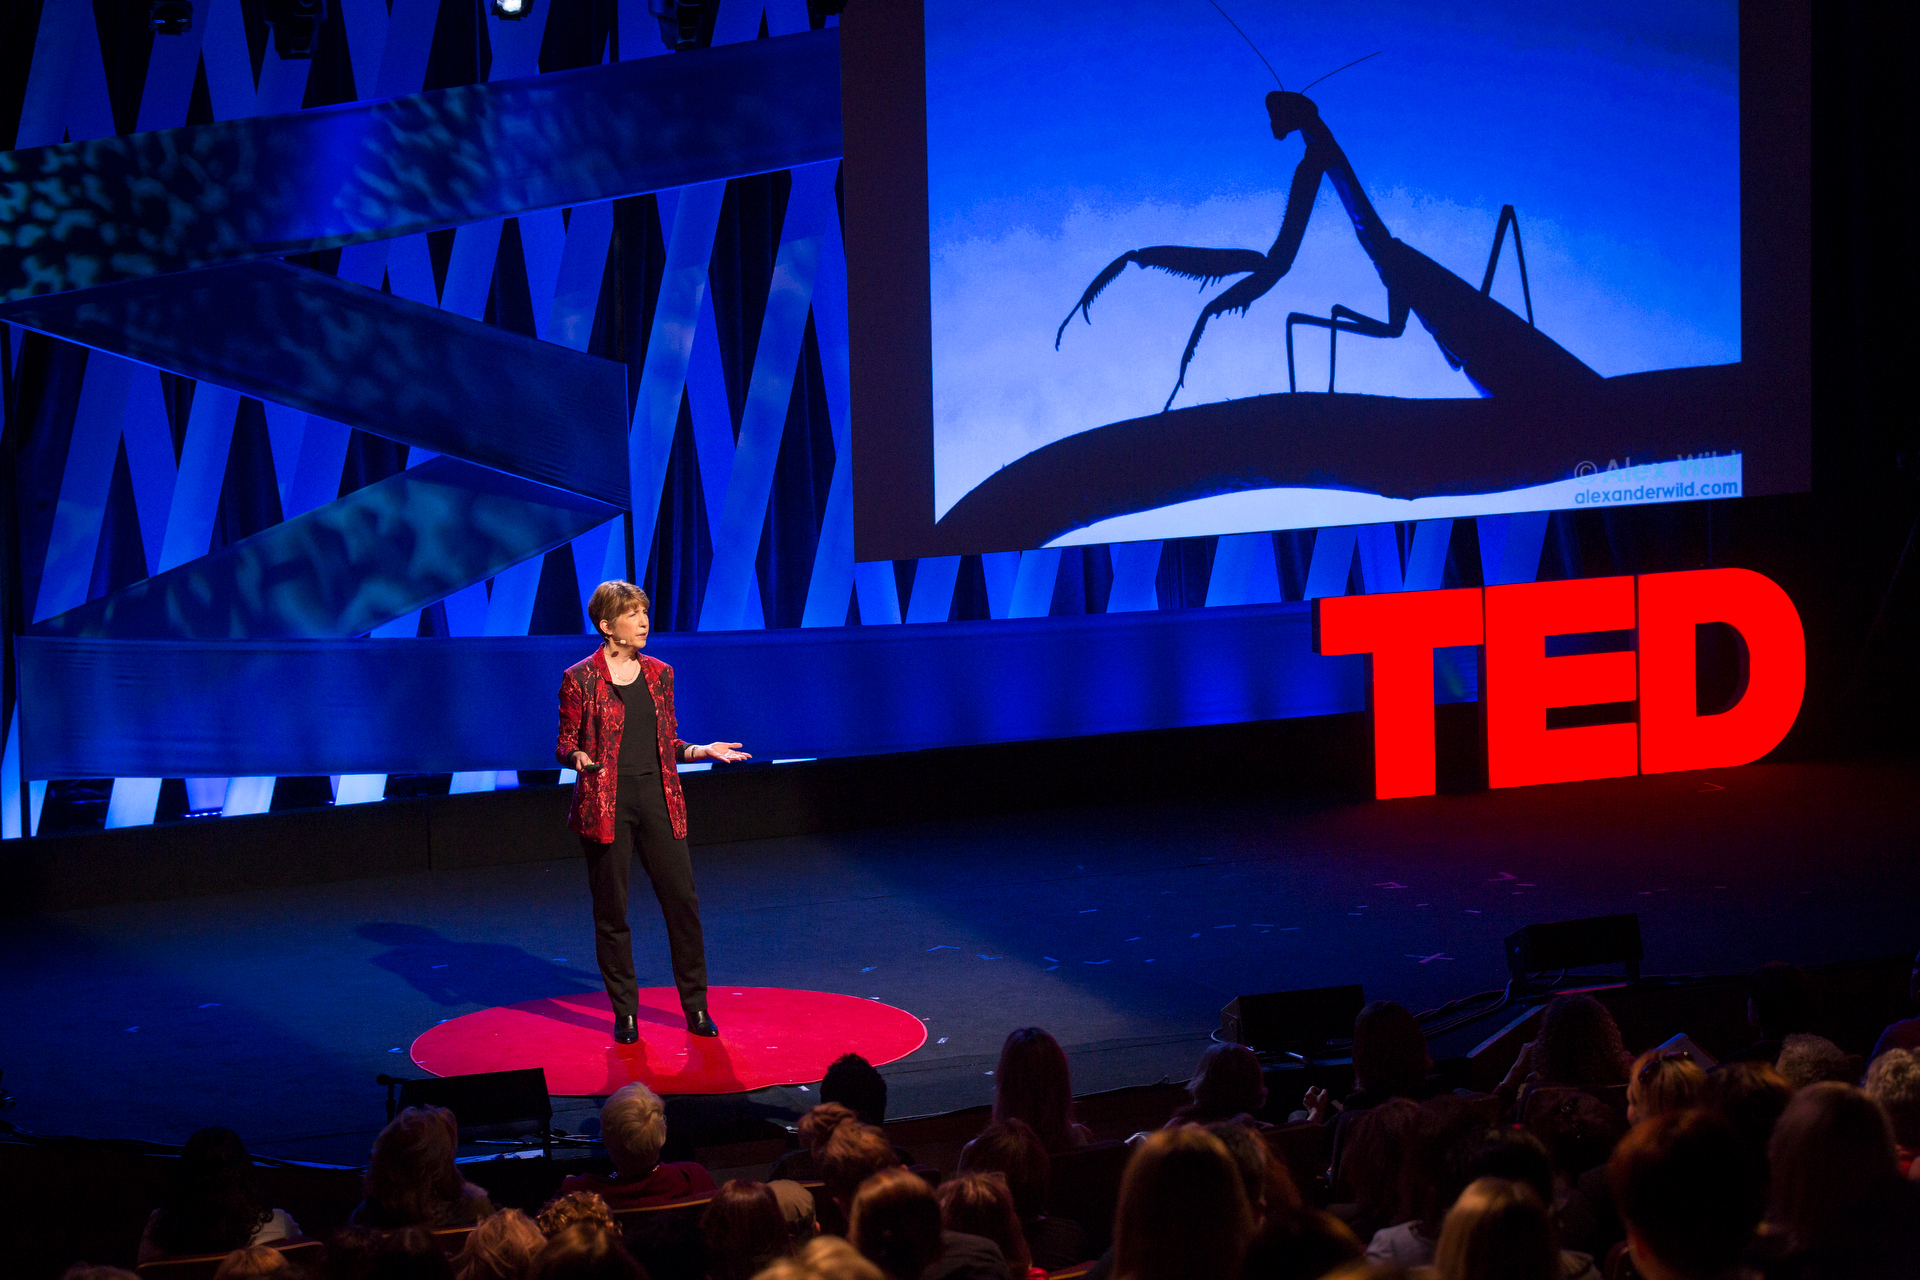 Marlene Zuk speaks at TEDWomen2015 - Momentum, Session 3, May 28, 2015, Monterey Conference Center, Monterey, California, USA. Photo: Marla Aufmuth/TED